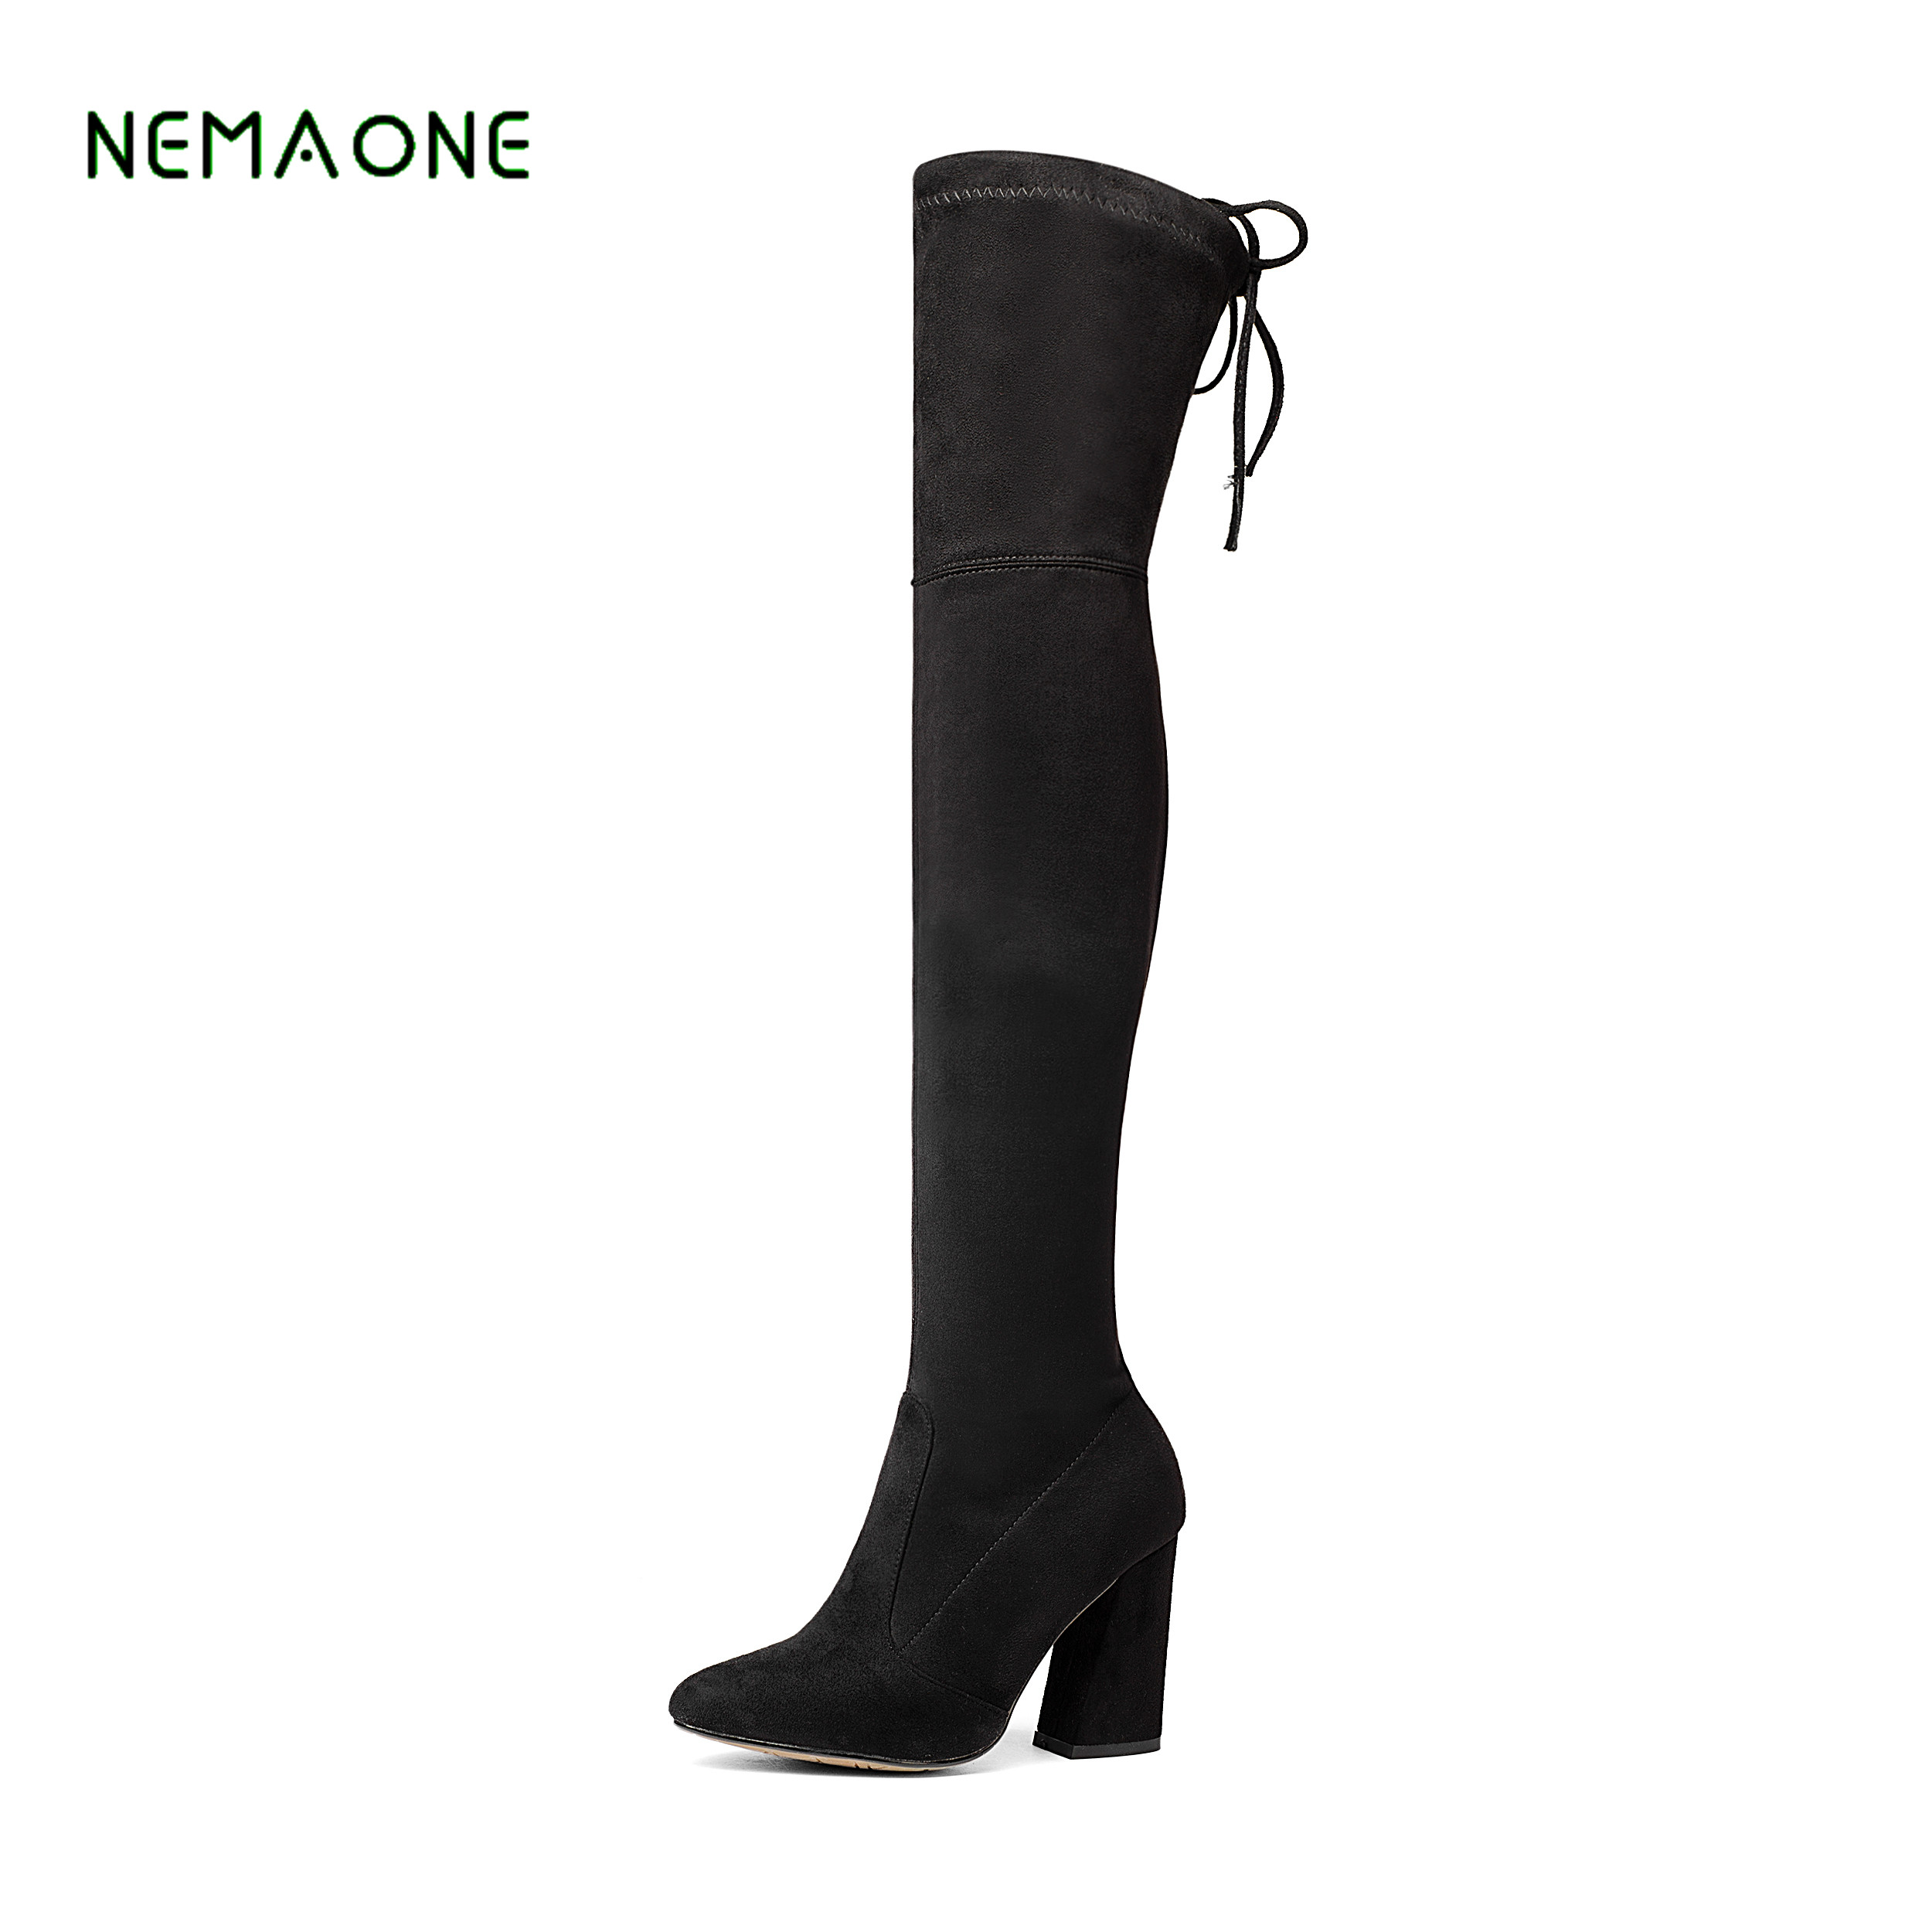 NEMAONE Women Stretch Suede Over the Knee Boots Thigh High Boots Sexy Fashion Plus Size High Heels Shoes Woman 2017 Black Brown 2018 winter thigh high boots women faux suede leather high heels over the knee botas mujer plus size shoes woman 34 43